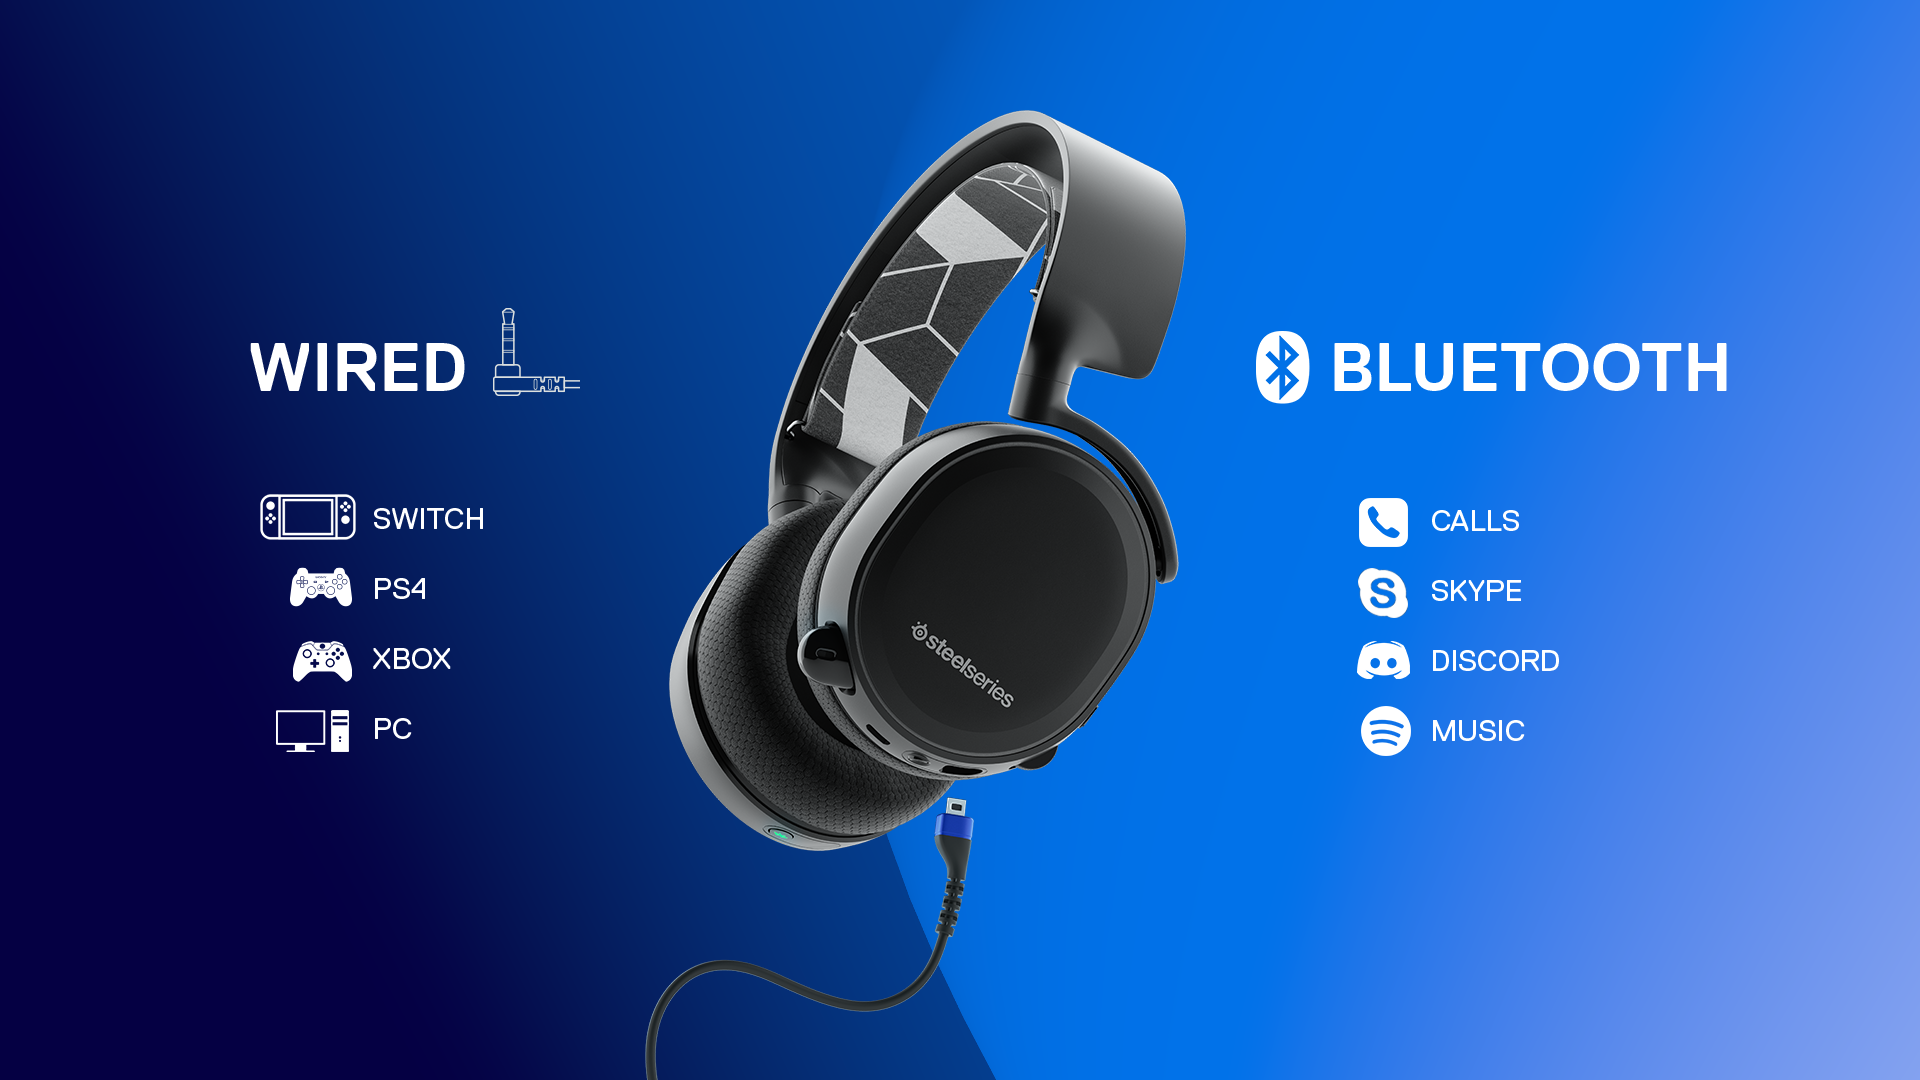 steelseries announces new arctis 3 bluetooth headset for simultaneous audio on switch gonintendo. Black Bedroom Furniture Sets. Home Design Ideas